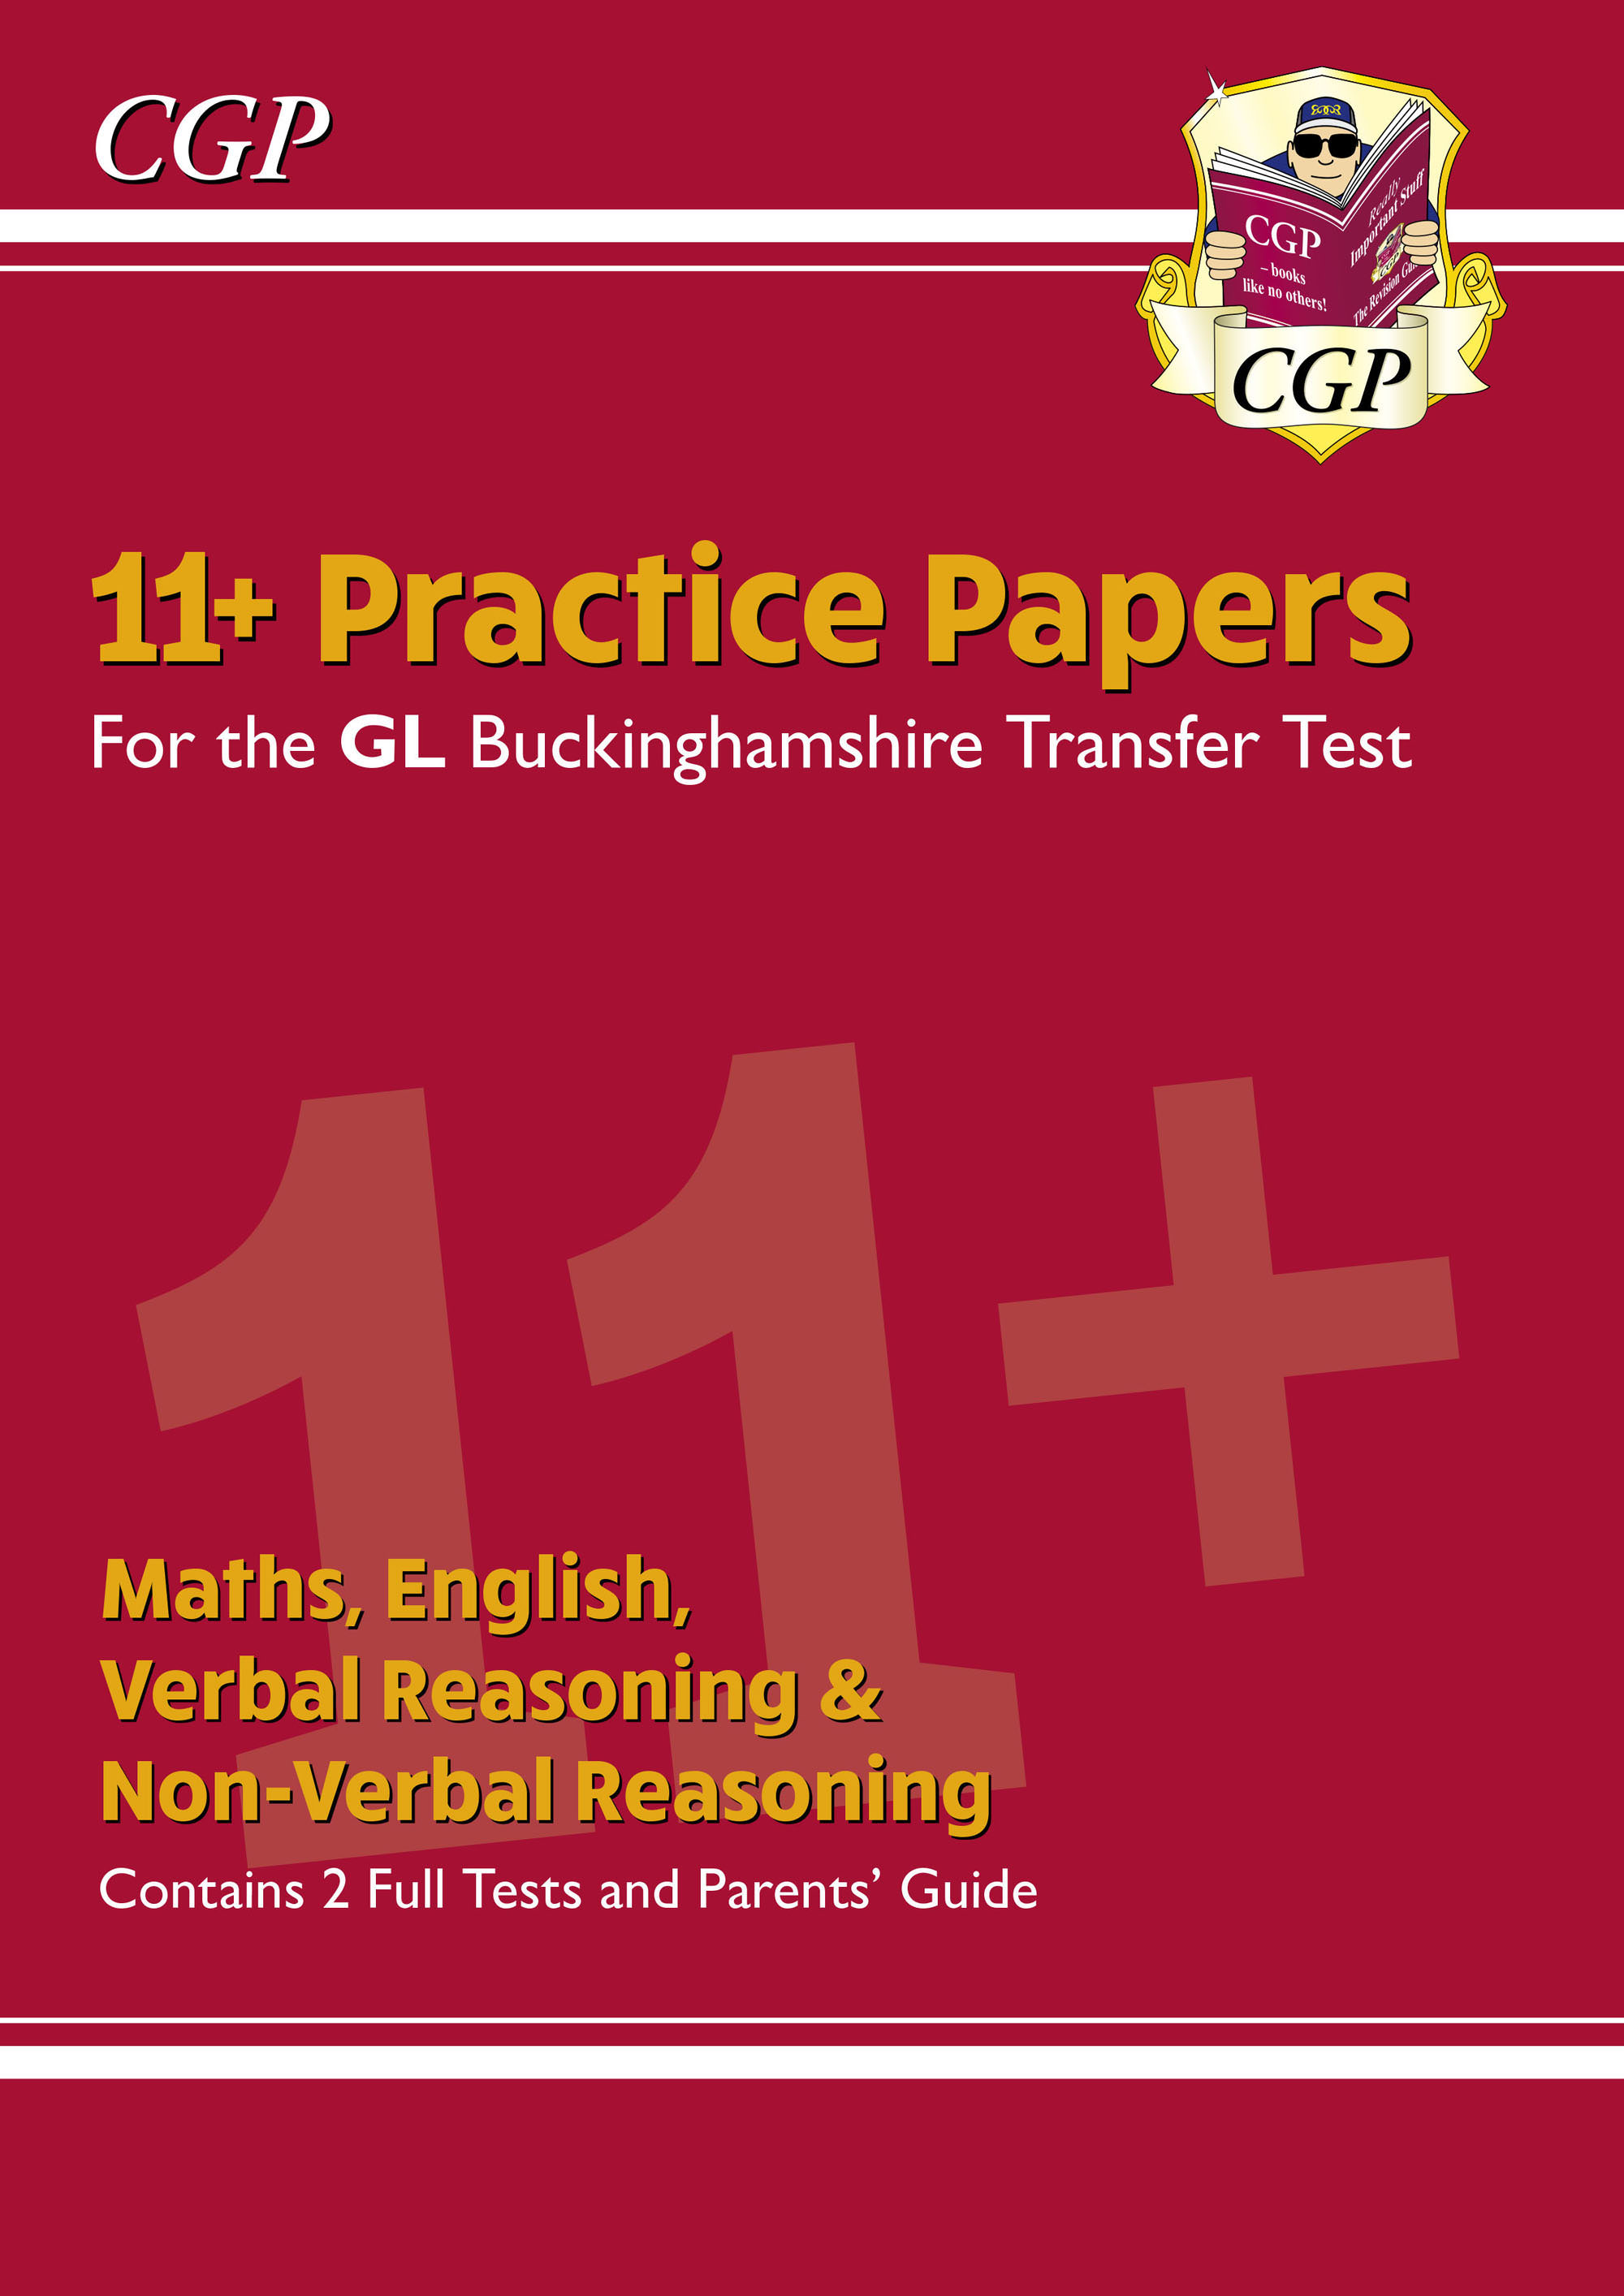 ELPCE2DK - New Buckinghamshire 11+ GL Practice Papers: Secondary Transfer Test (inc Parents' Guide)